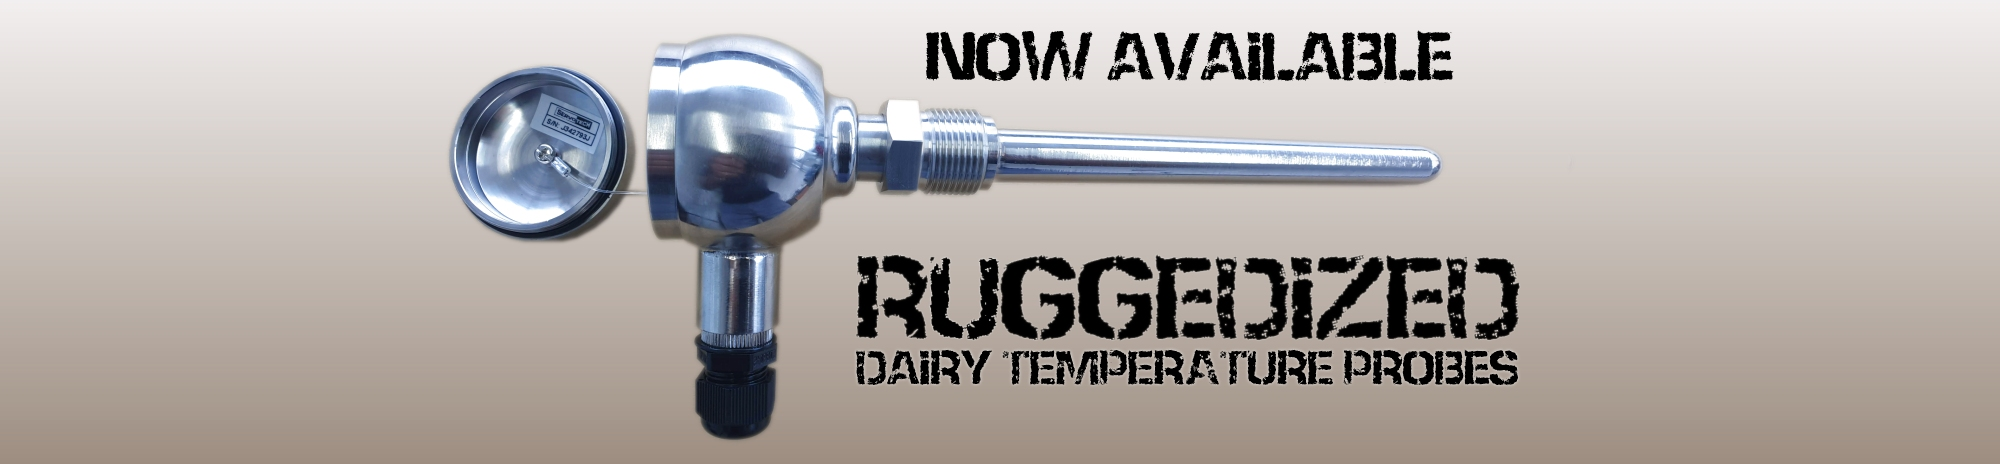 Rugged Probes banner